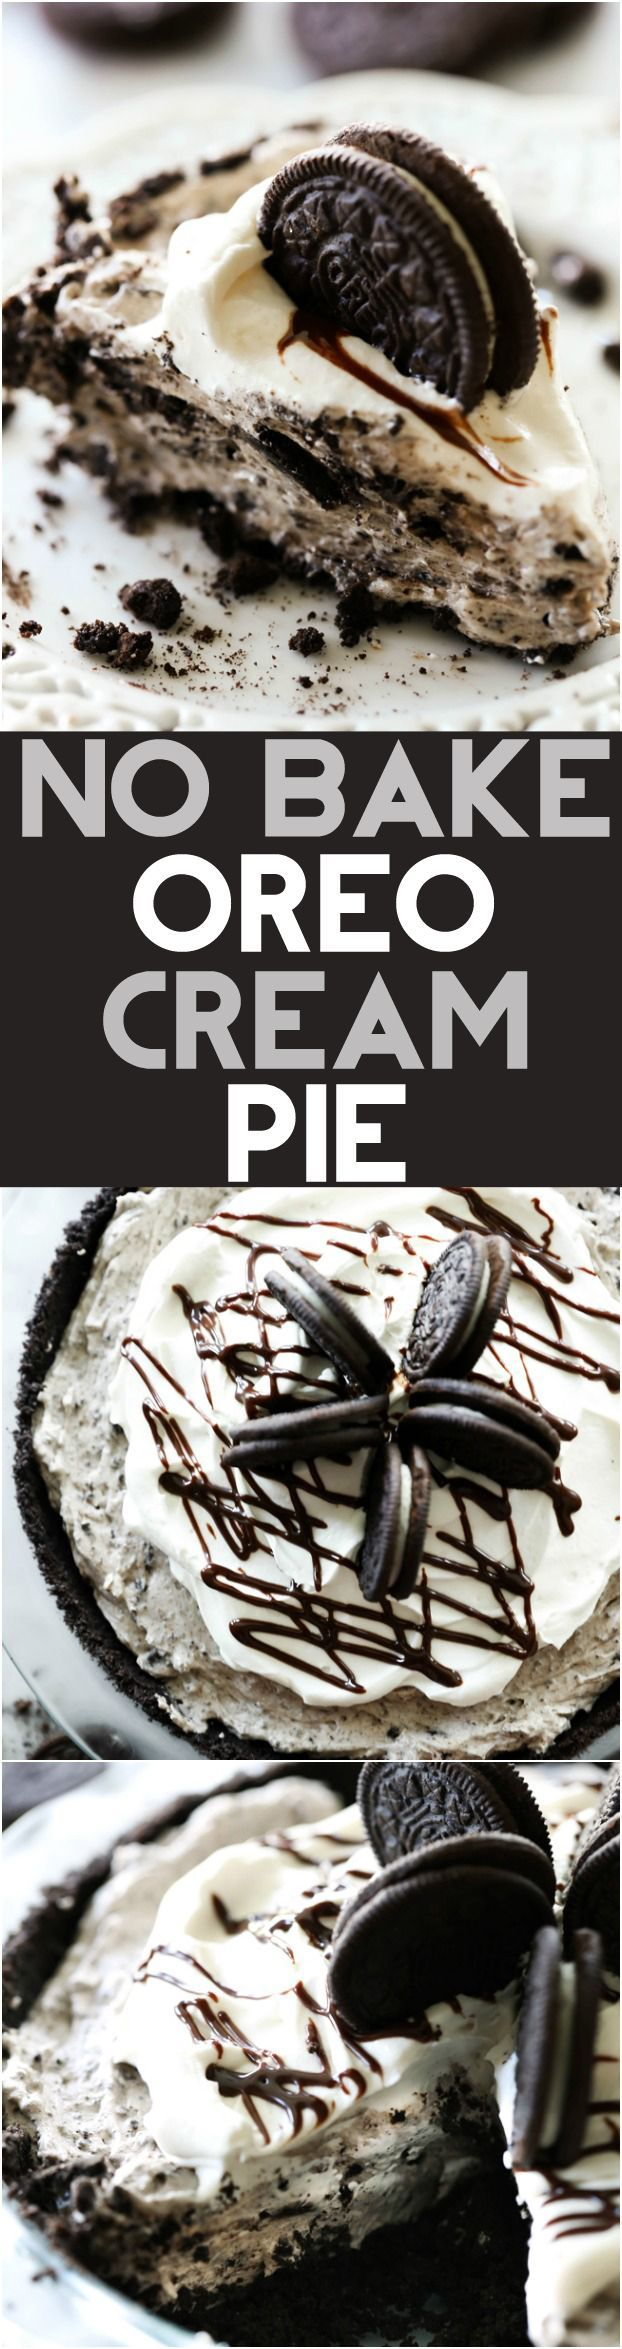 No Bake Oreo Cream Pie... This is such an amazing dessert with a delicious homemade Oreo crust and cookies and cream filling! It is my husband's FAVORITE dessert! (Baking Desserts Easy)